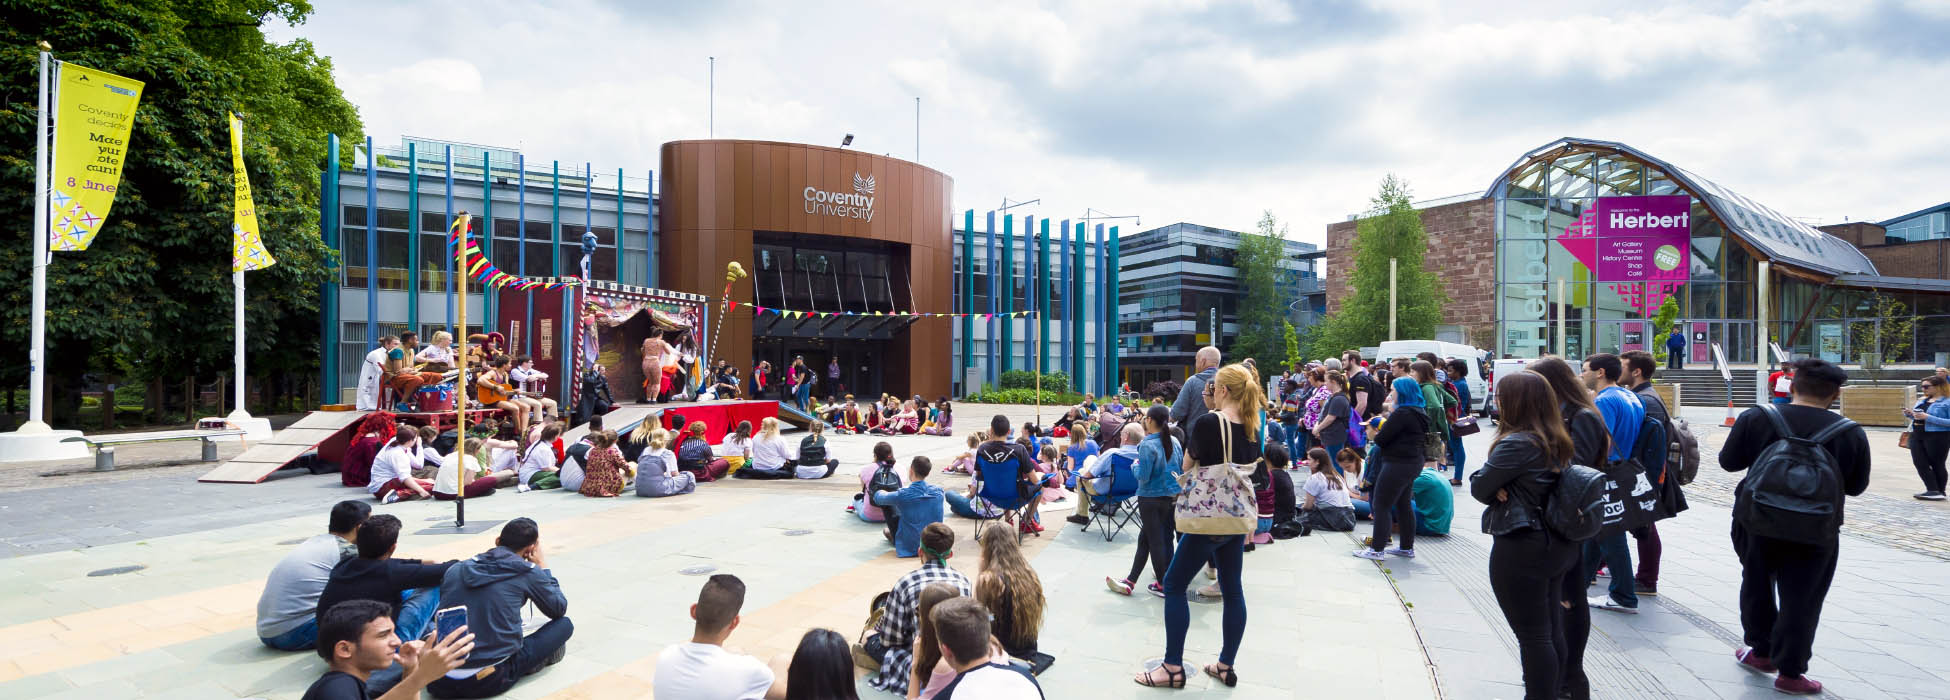 Image result for coventry university campus